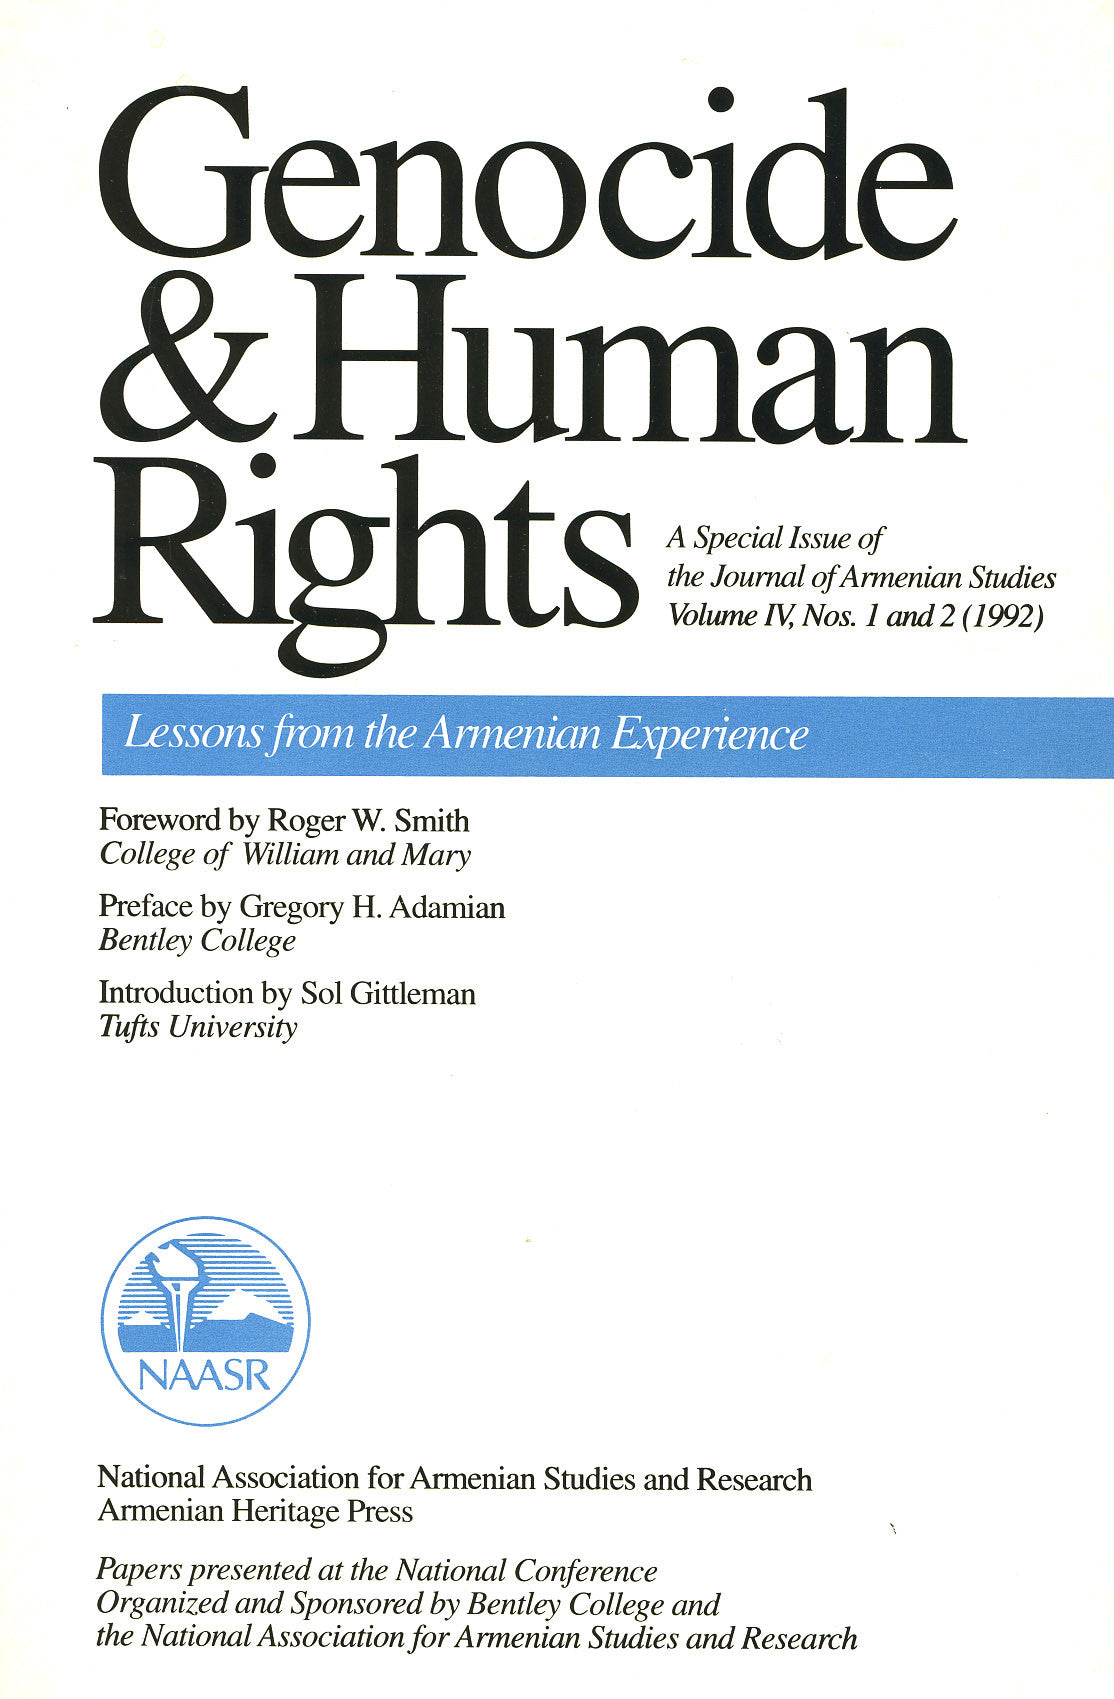 JOURNAL OF ARMENIAN STUDIES: Volume IV, Numbers 1 & 2: 1992 Special Issue: Genocide and Human Rights: Lessons from the Armenian Experience